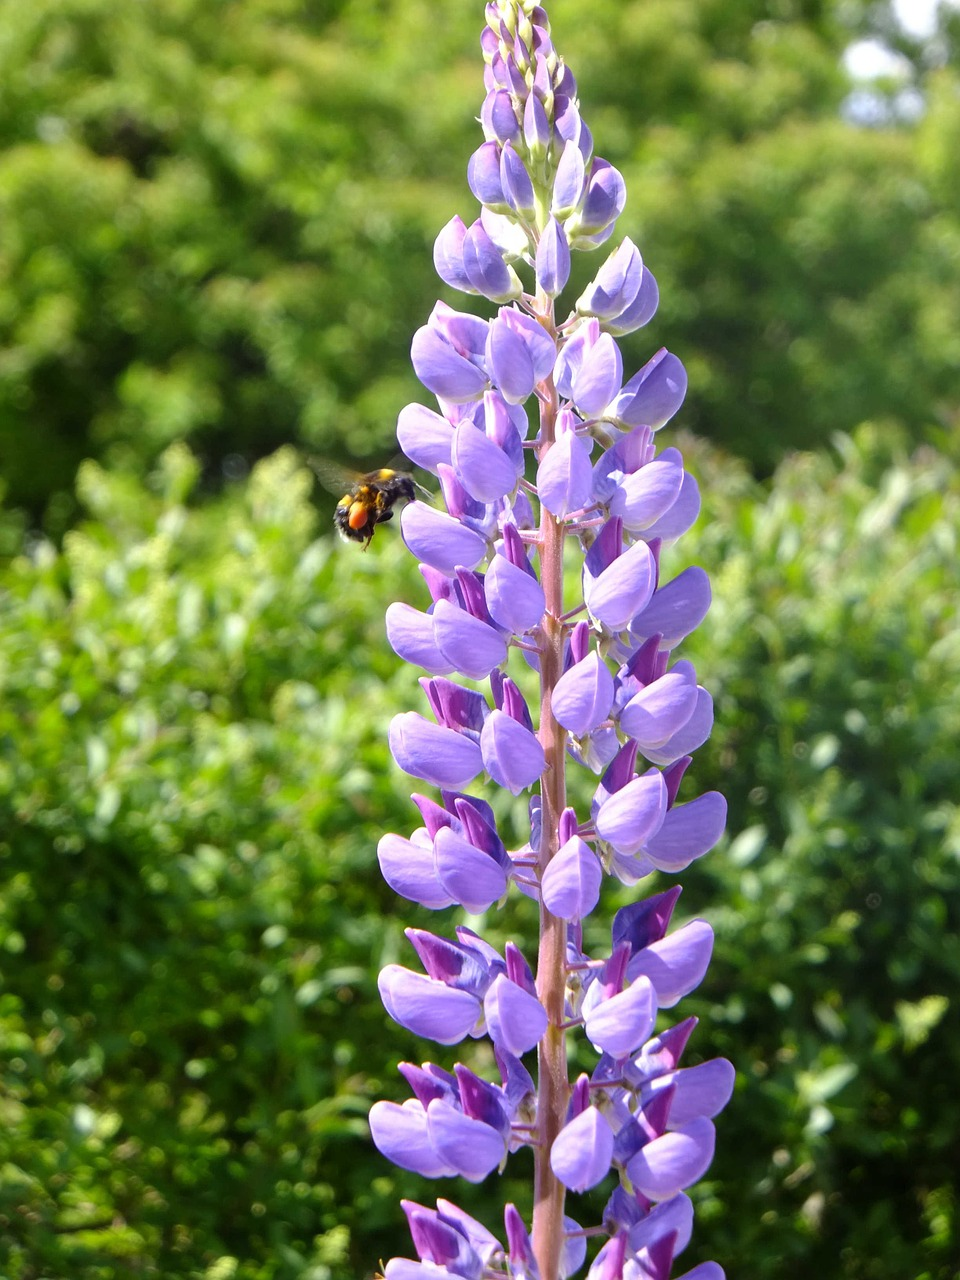 lupin natural purple free photo